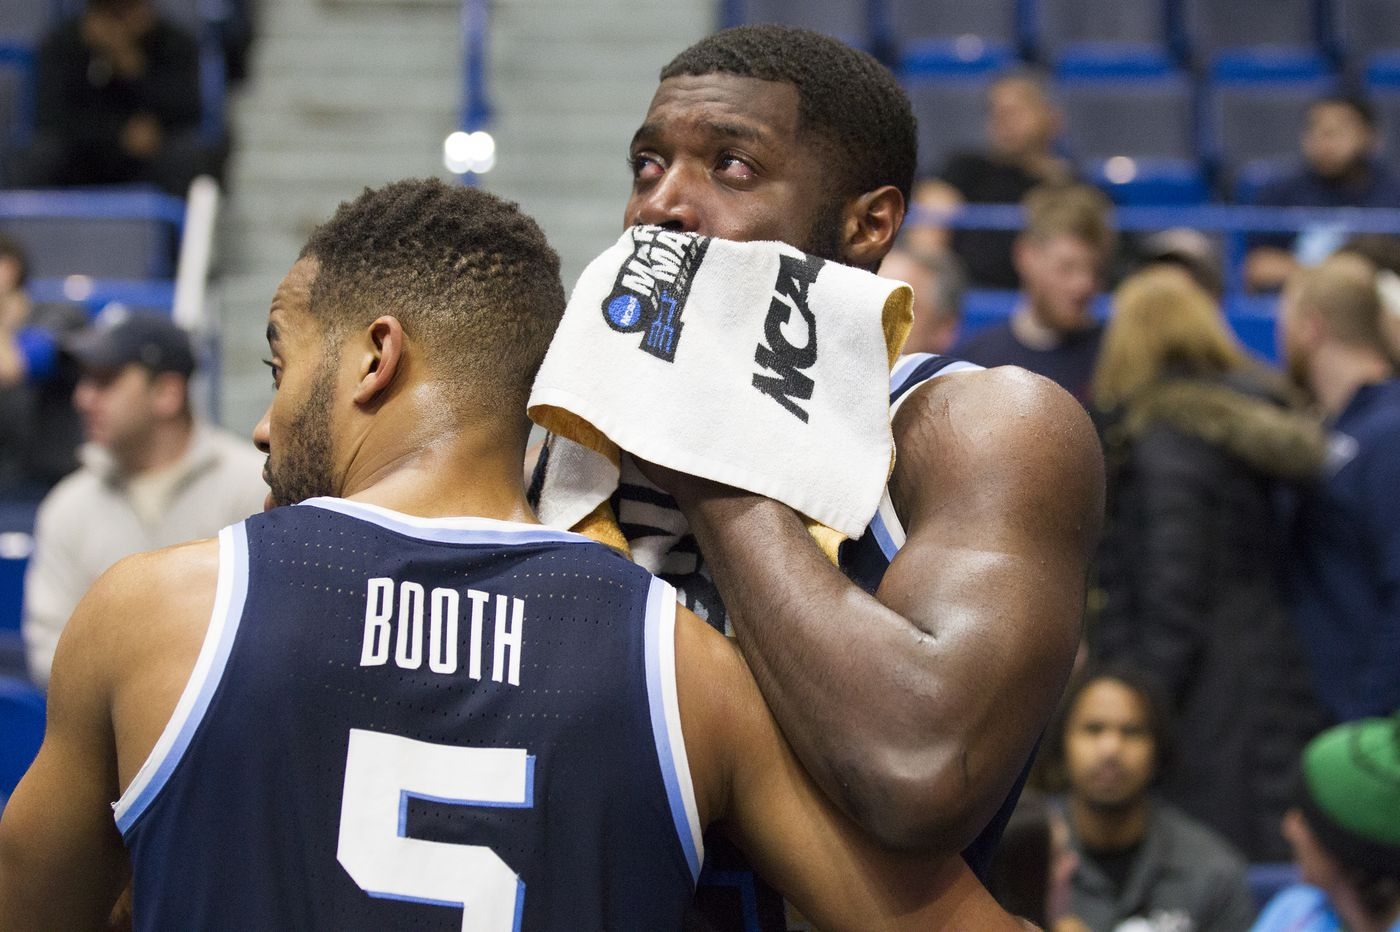 Phil Booth, Eric Paschall gave all they could to Villanova: 'They've been like big brothers, fathers almost to these guys'